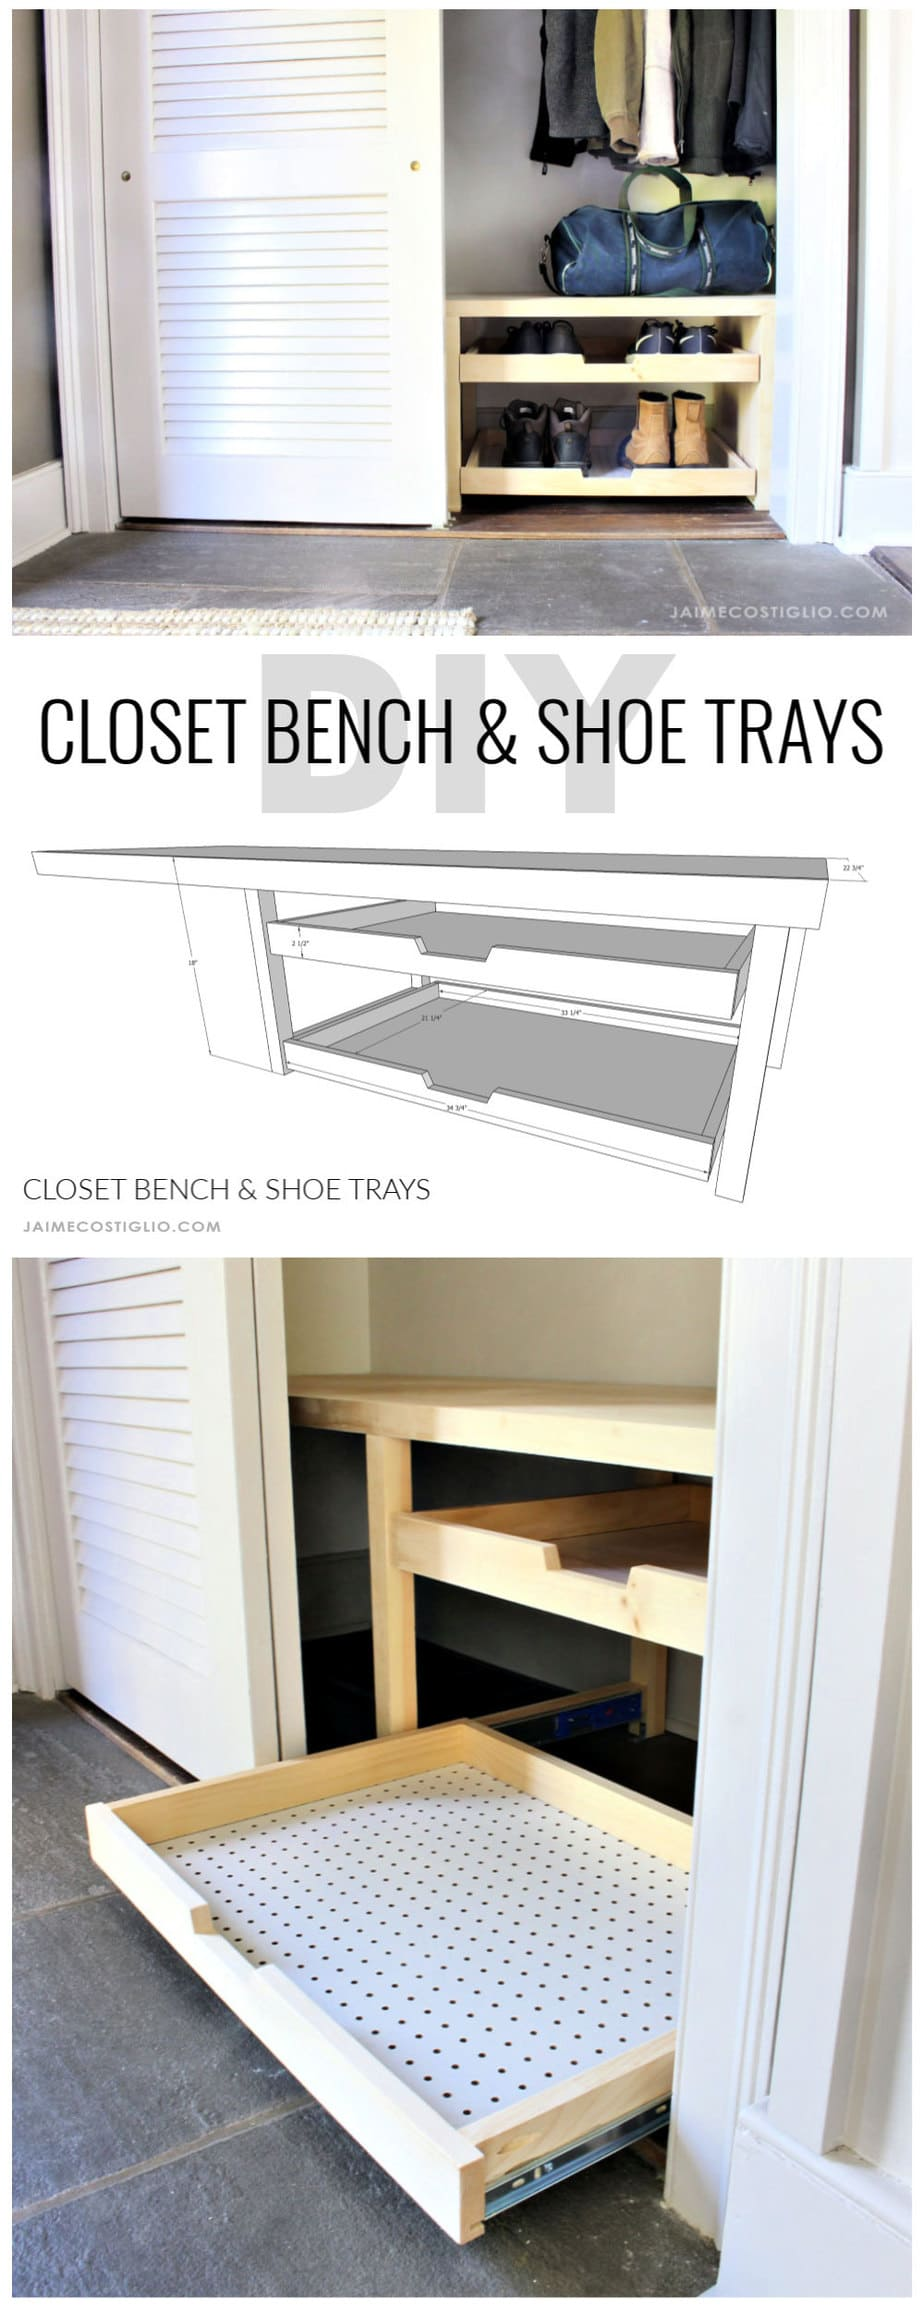 closet bench and shoe trays free plans